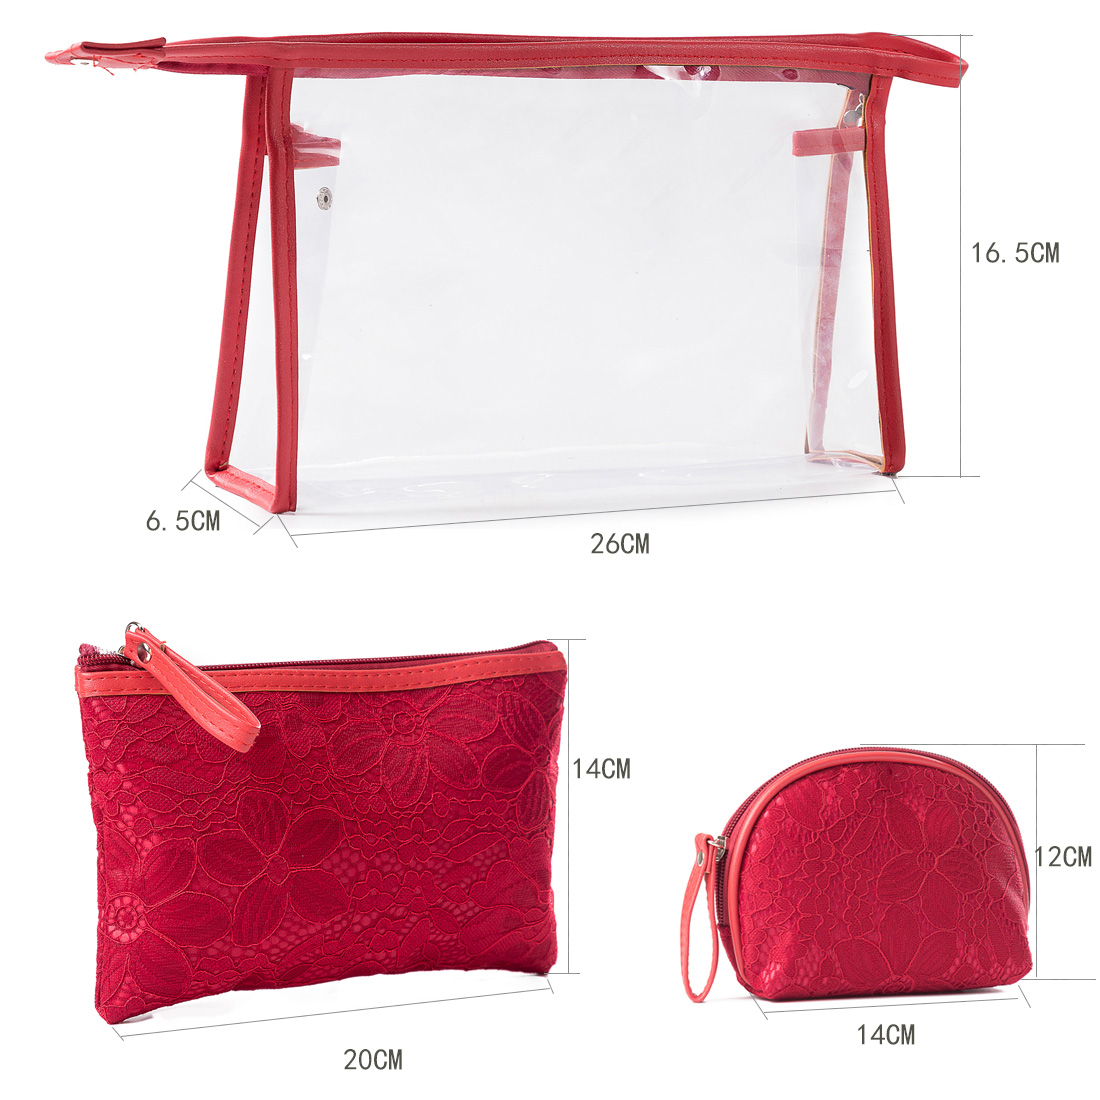 Embroidered Makeup Pouch Organizer Pvc Cosmetic Bag 3 Pcs Set